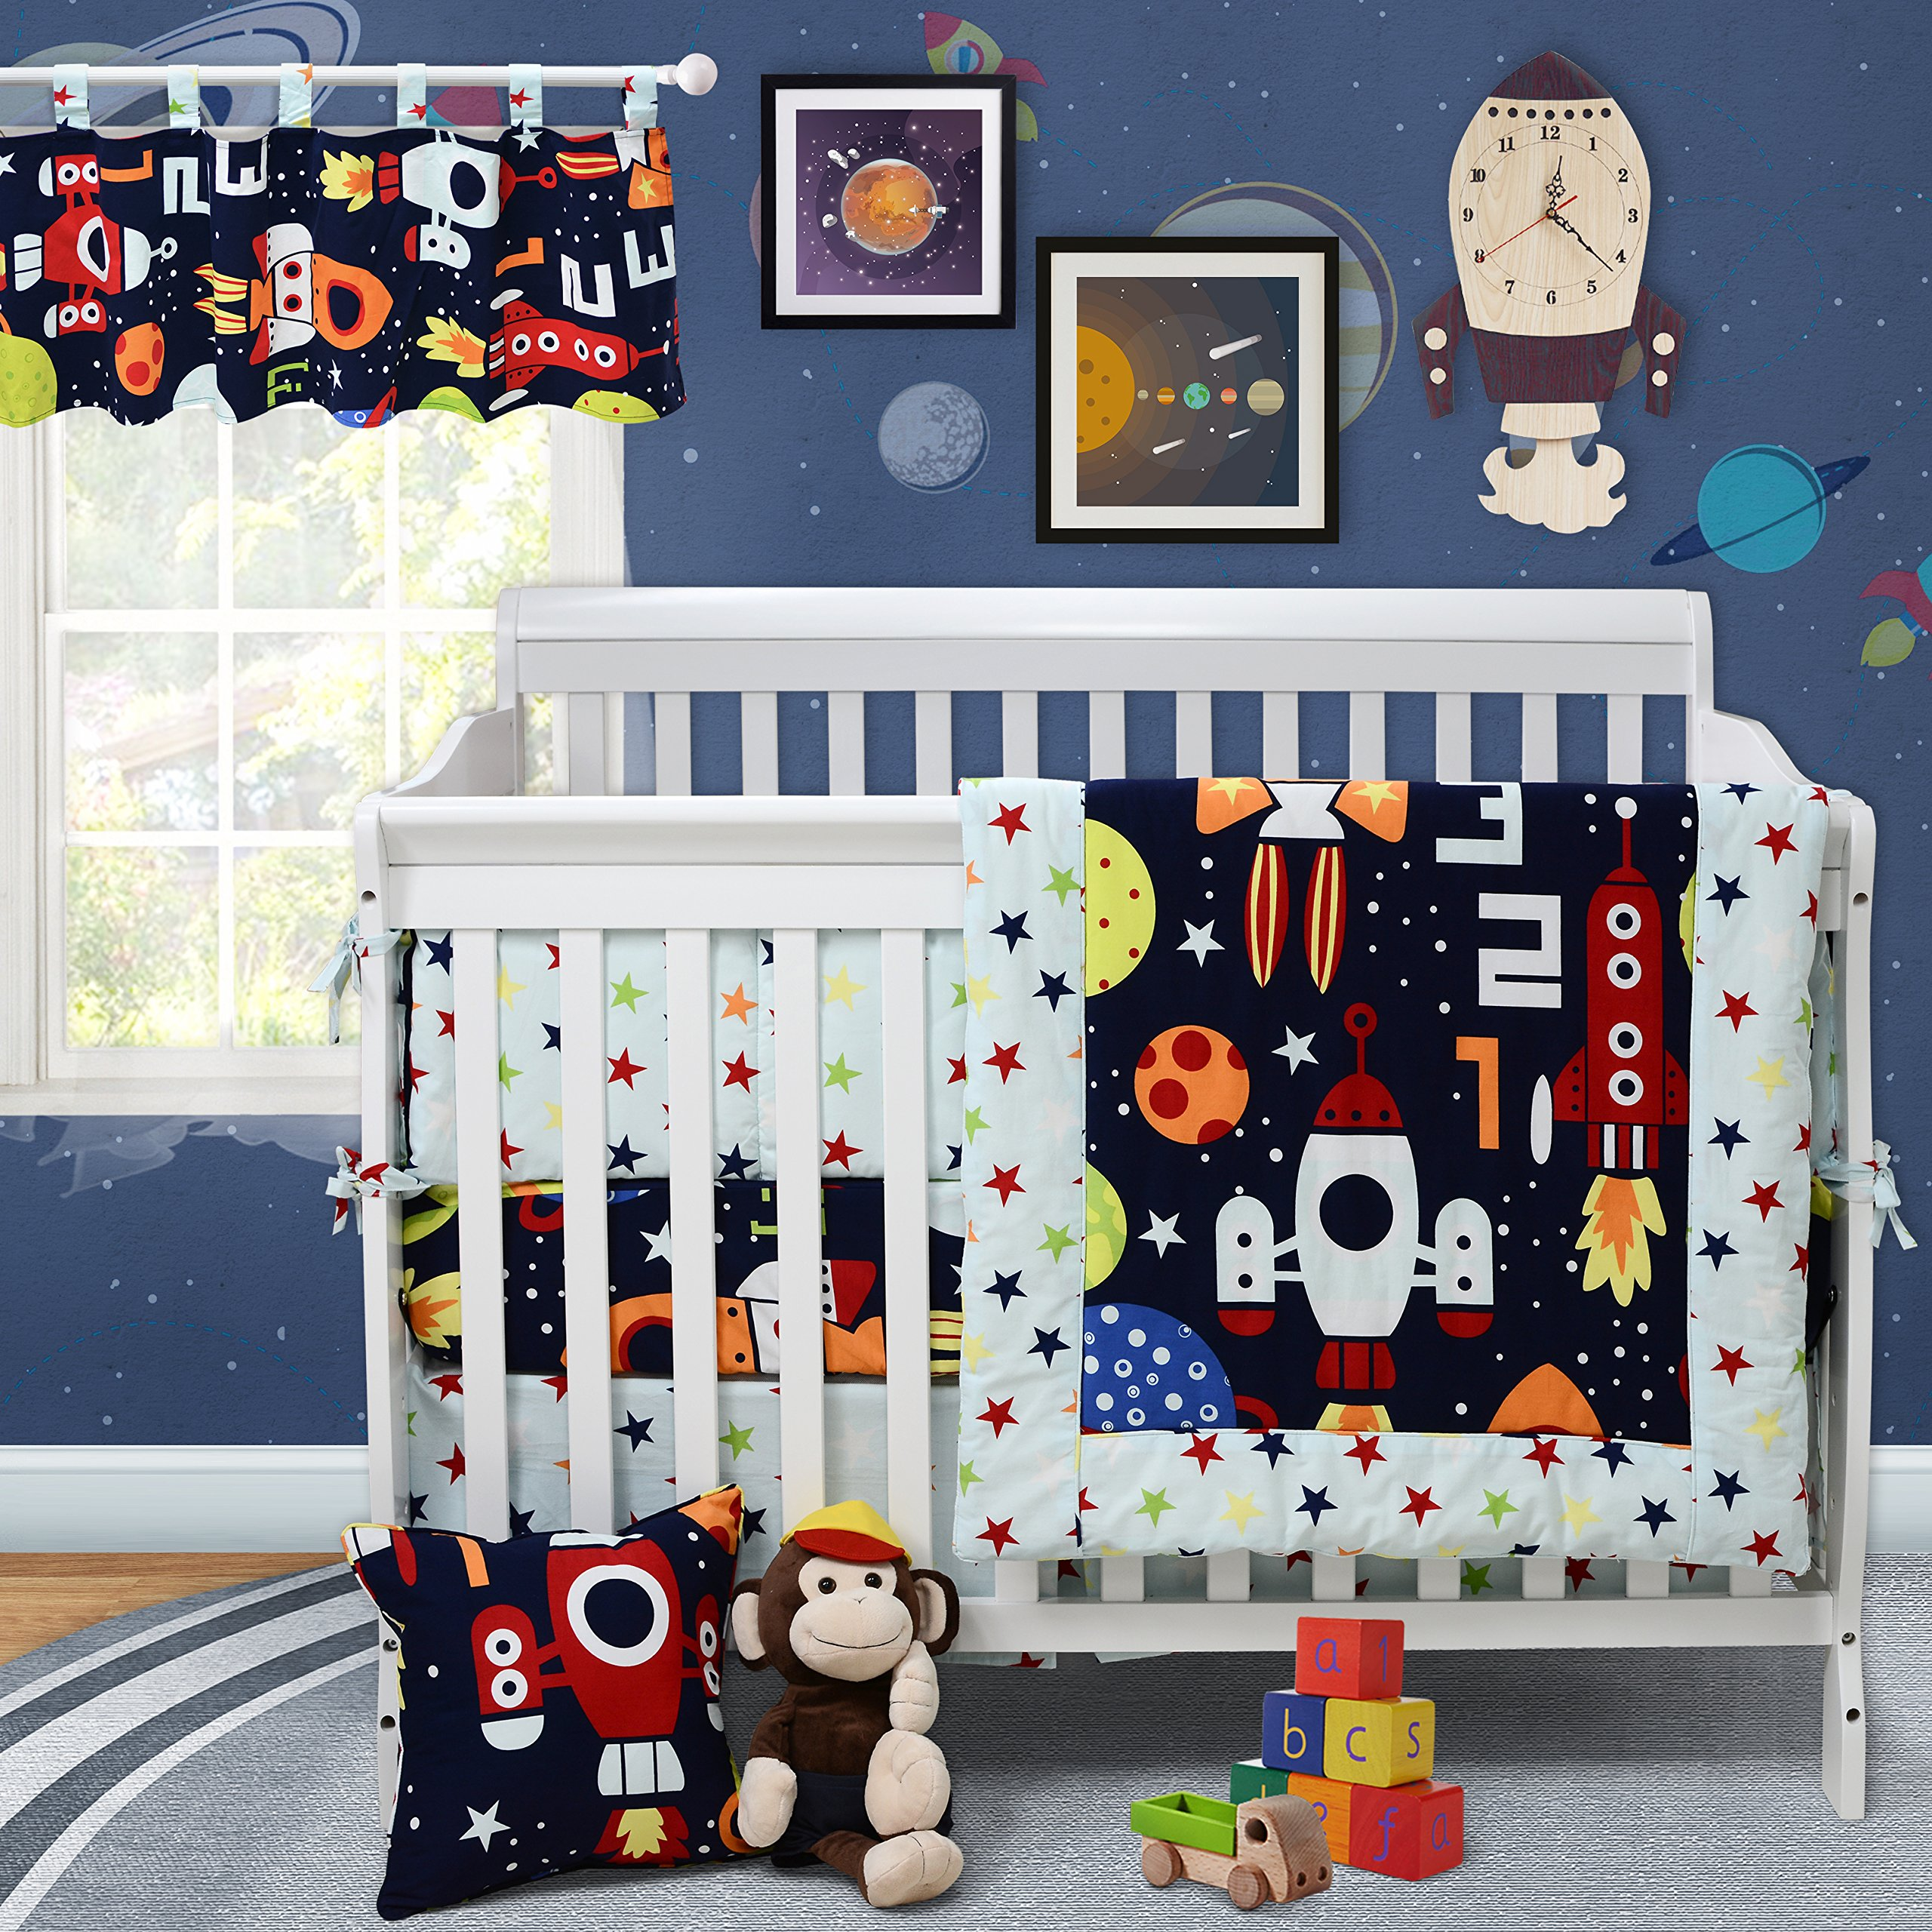 Baby Bedding Set for Boys Galaxy Space Bedding Set 100% Cotton Blue Crib Bedding Set with Bumper by Brandream, 9 pieces